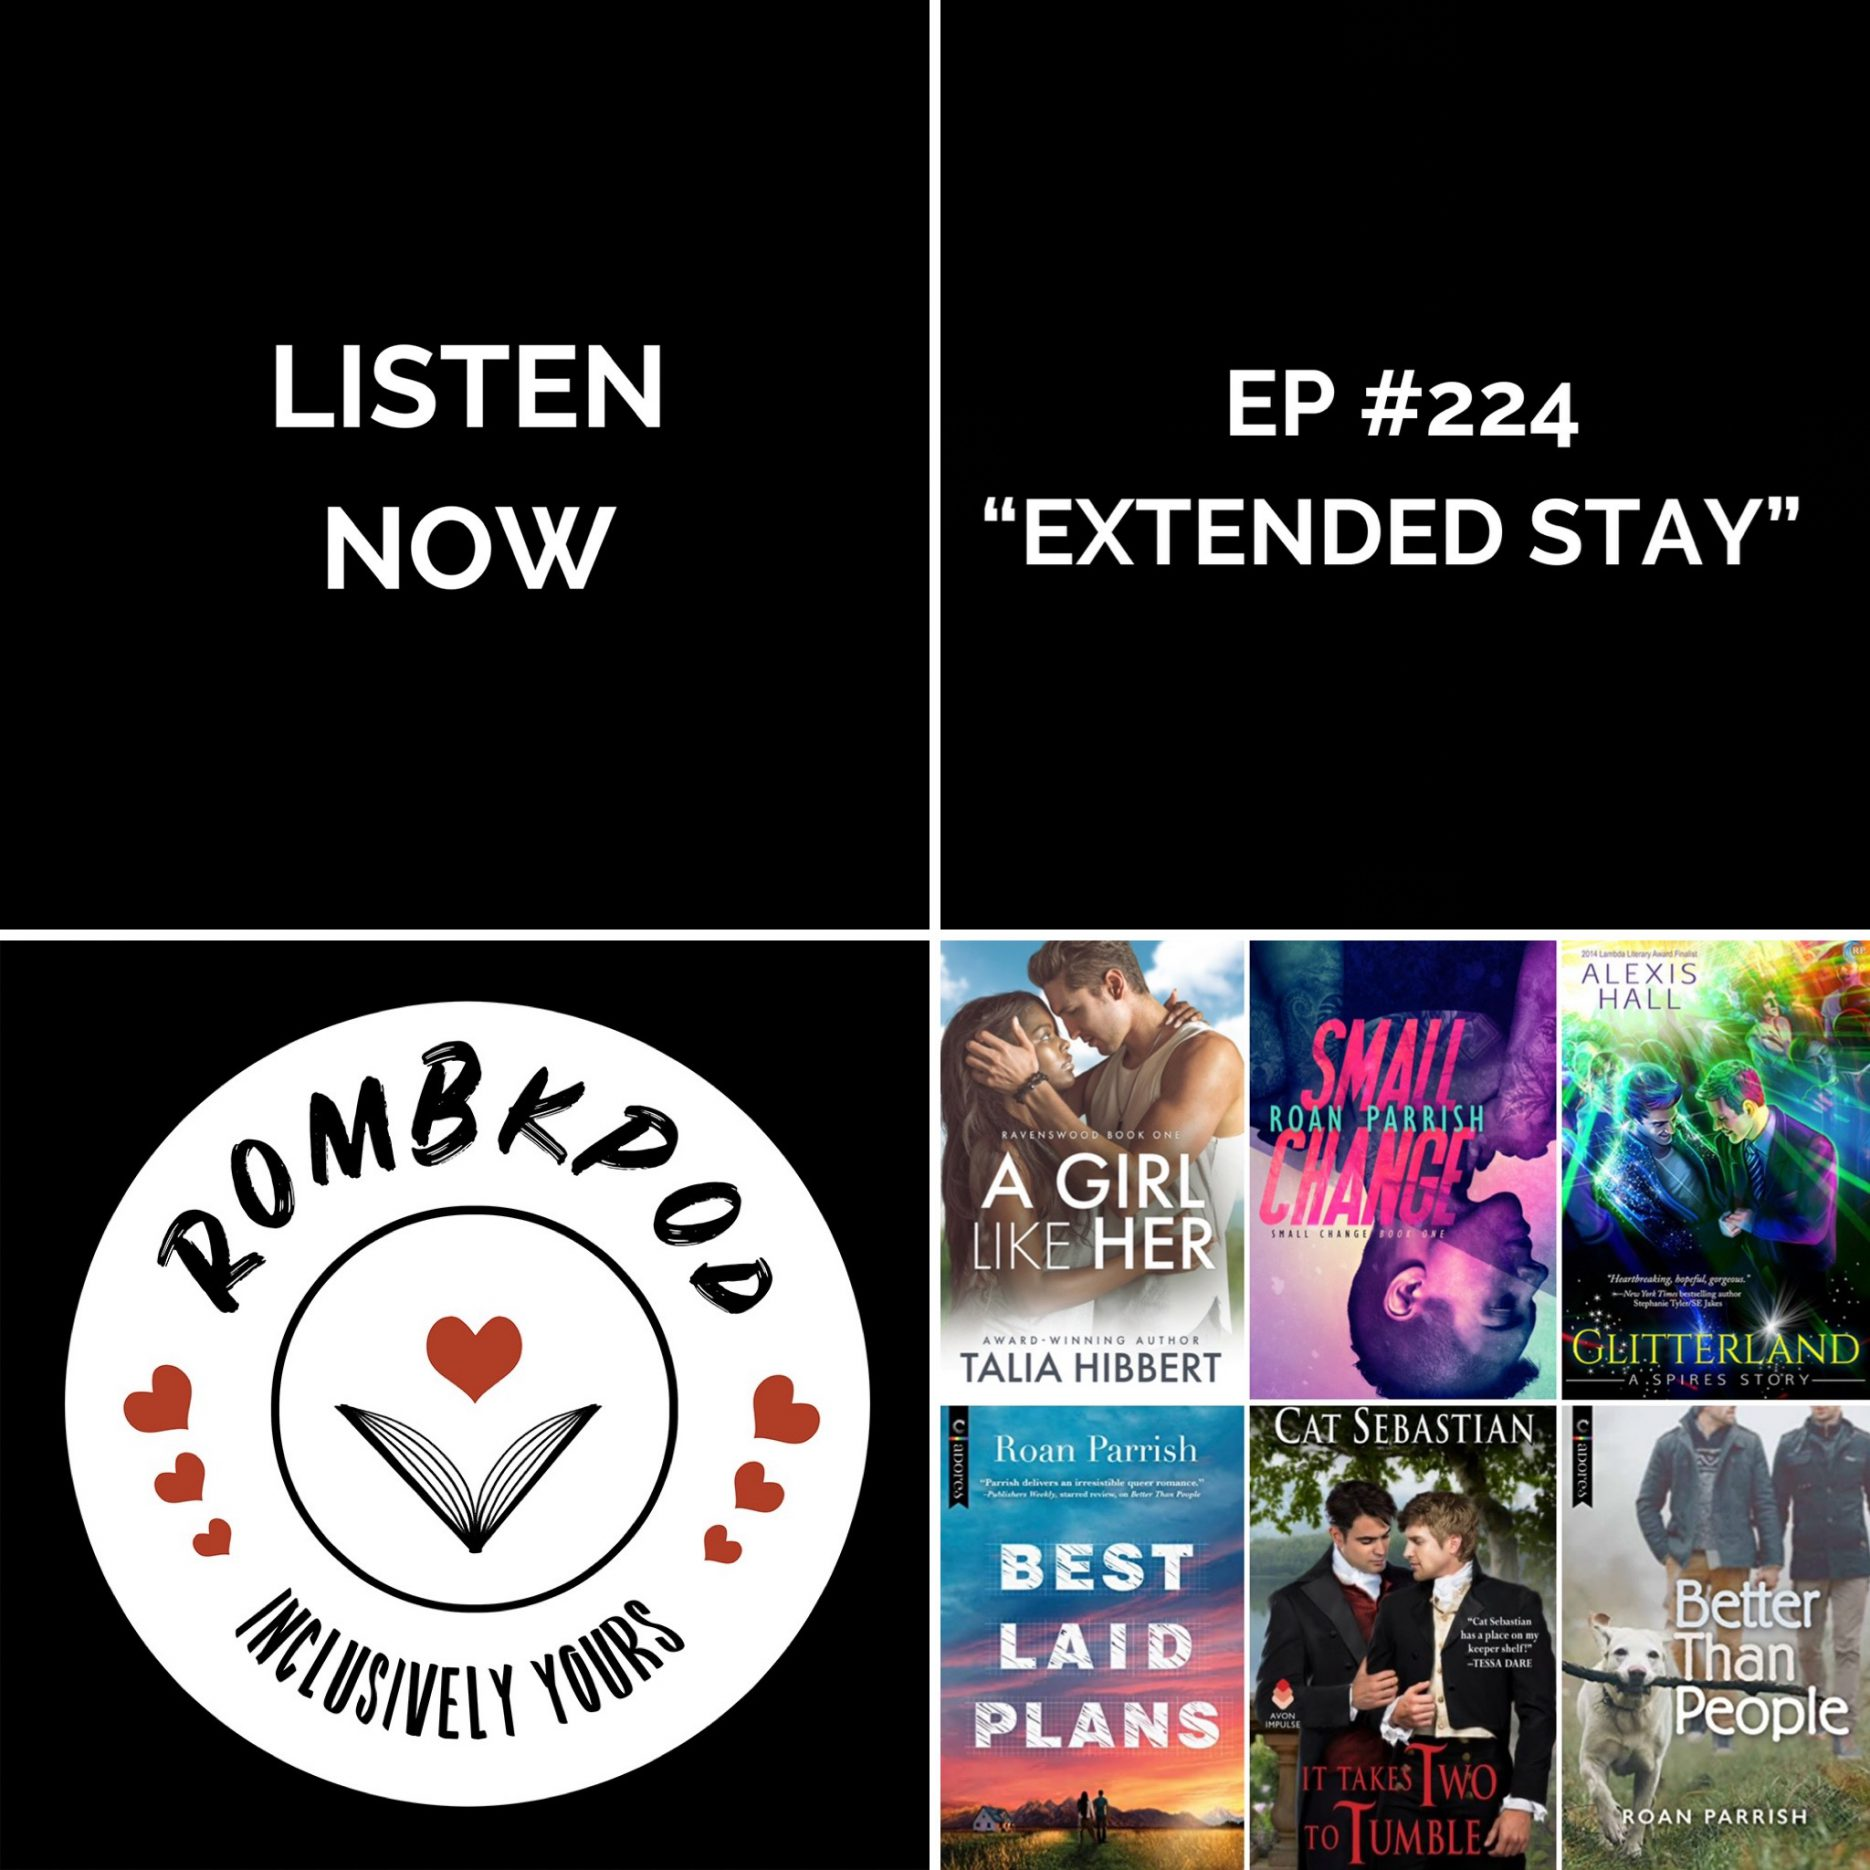 """IMAGE: lower left corner, RomBkPod heart logo; lower right corner, ep #224 book cover collage; IMAGE TEXT: Listen Now, ep #224 """"Extended Stay"""""""